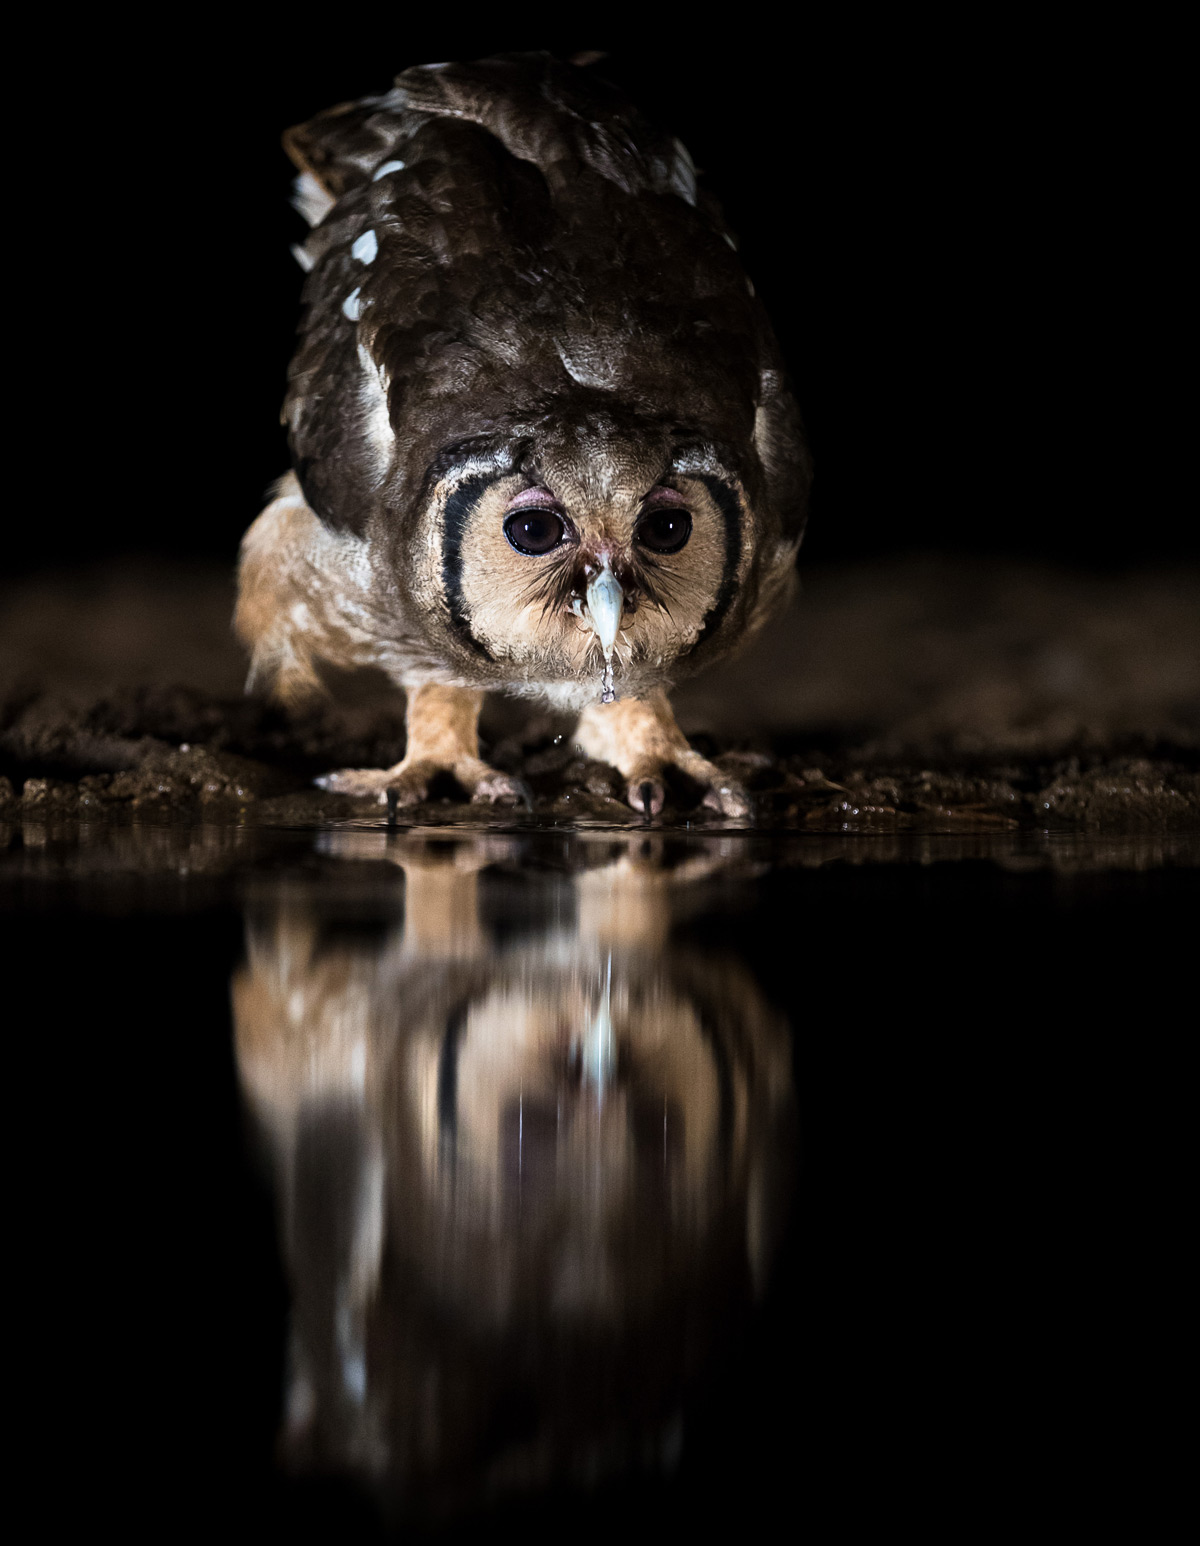 A Verreaux's eagle-owl (also known as a giant eagle owl) drinks from a waterhole at Zimanga Private Game Reserve, South Africa © Annemarie du Plessis